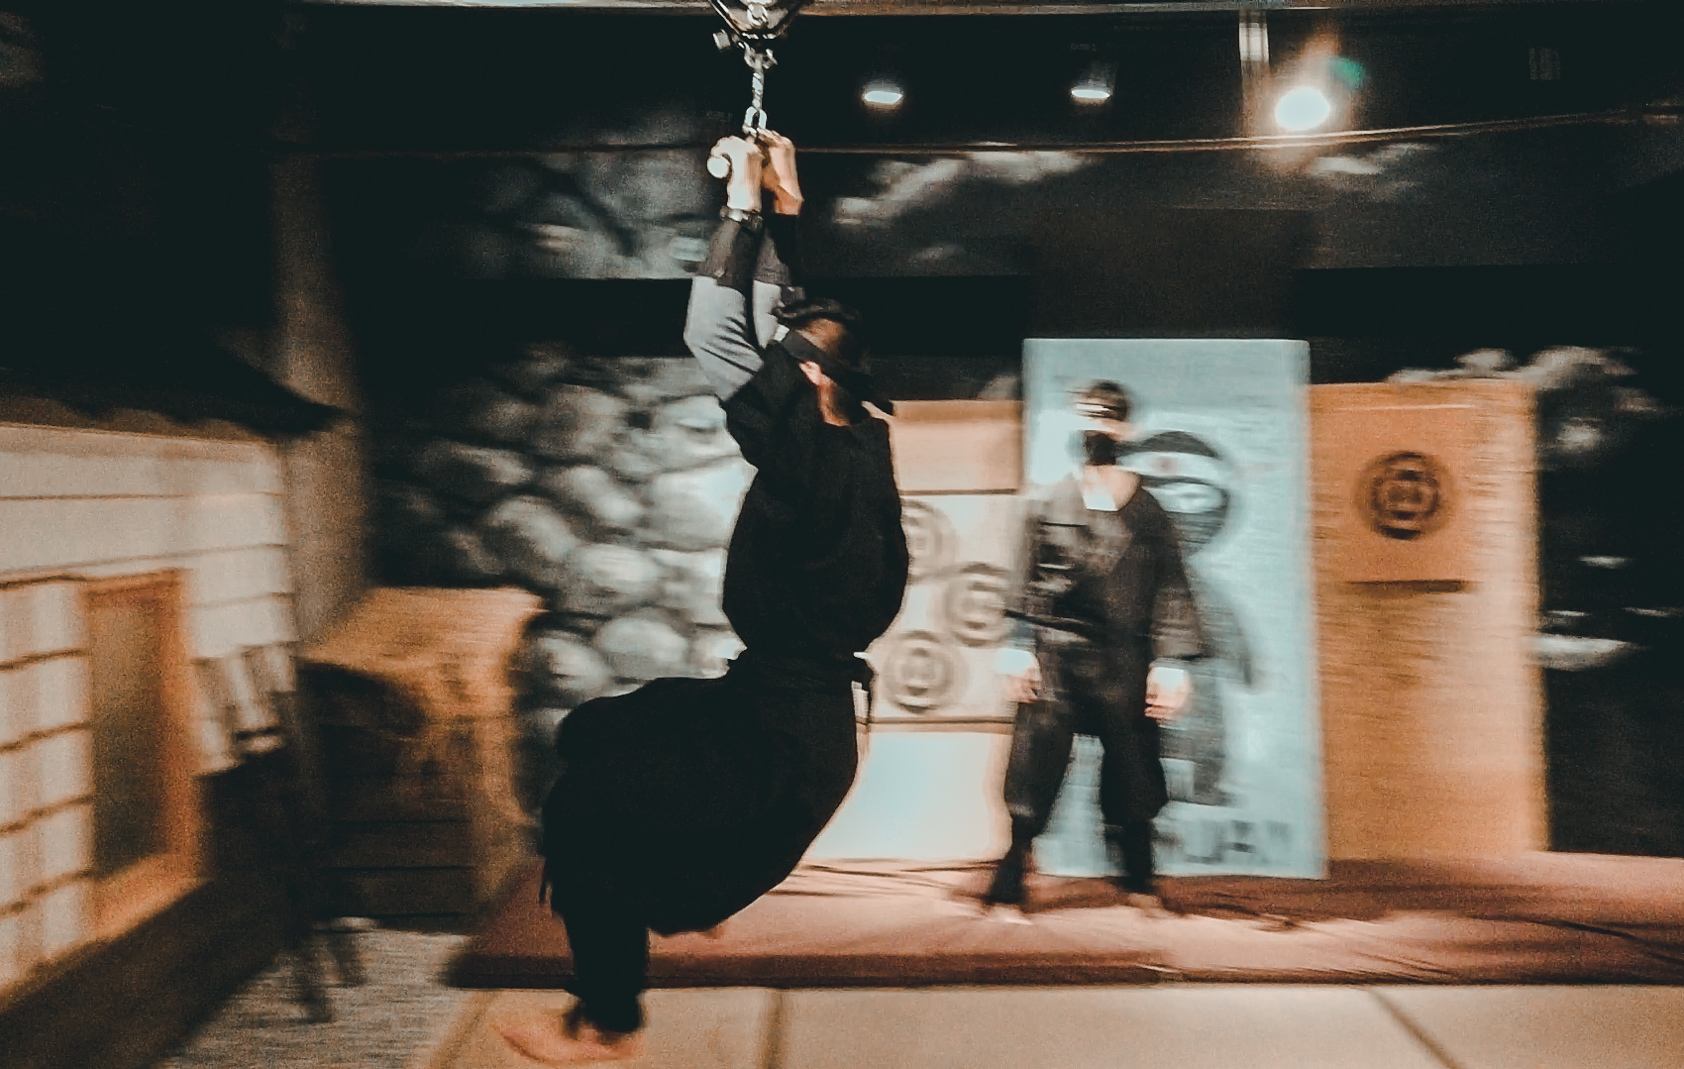 Sapporo Ninja Experience via KKday: Must-try Activity When in Sapporo